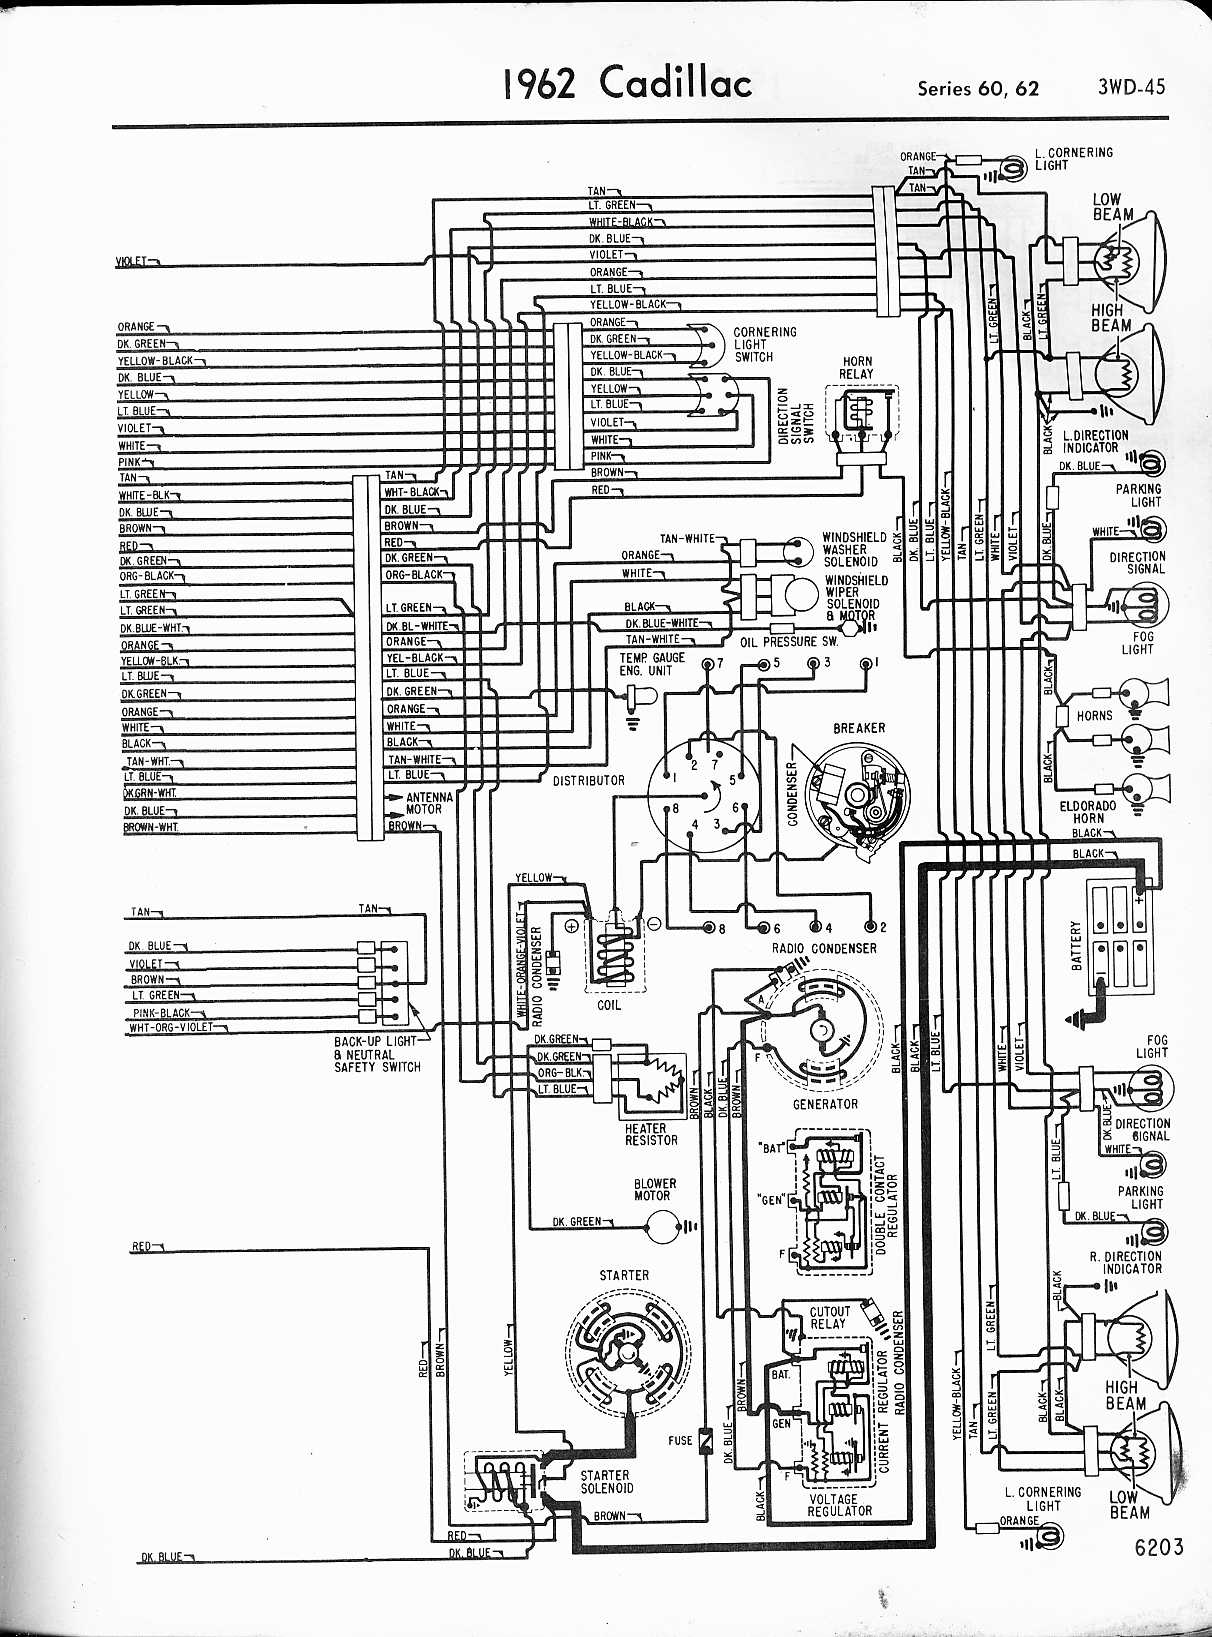 Cadillac wiring diagrams 1957 1965 1962 series 60 62 right asfbconference2016 Gallery